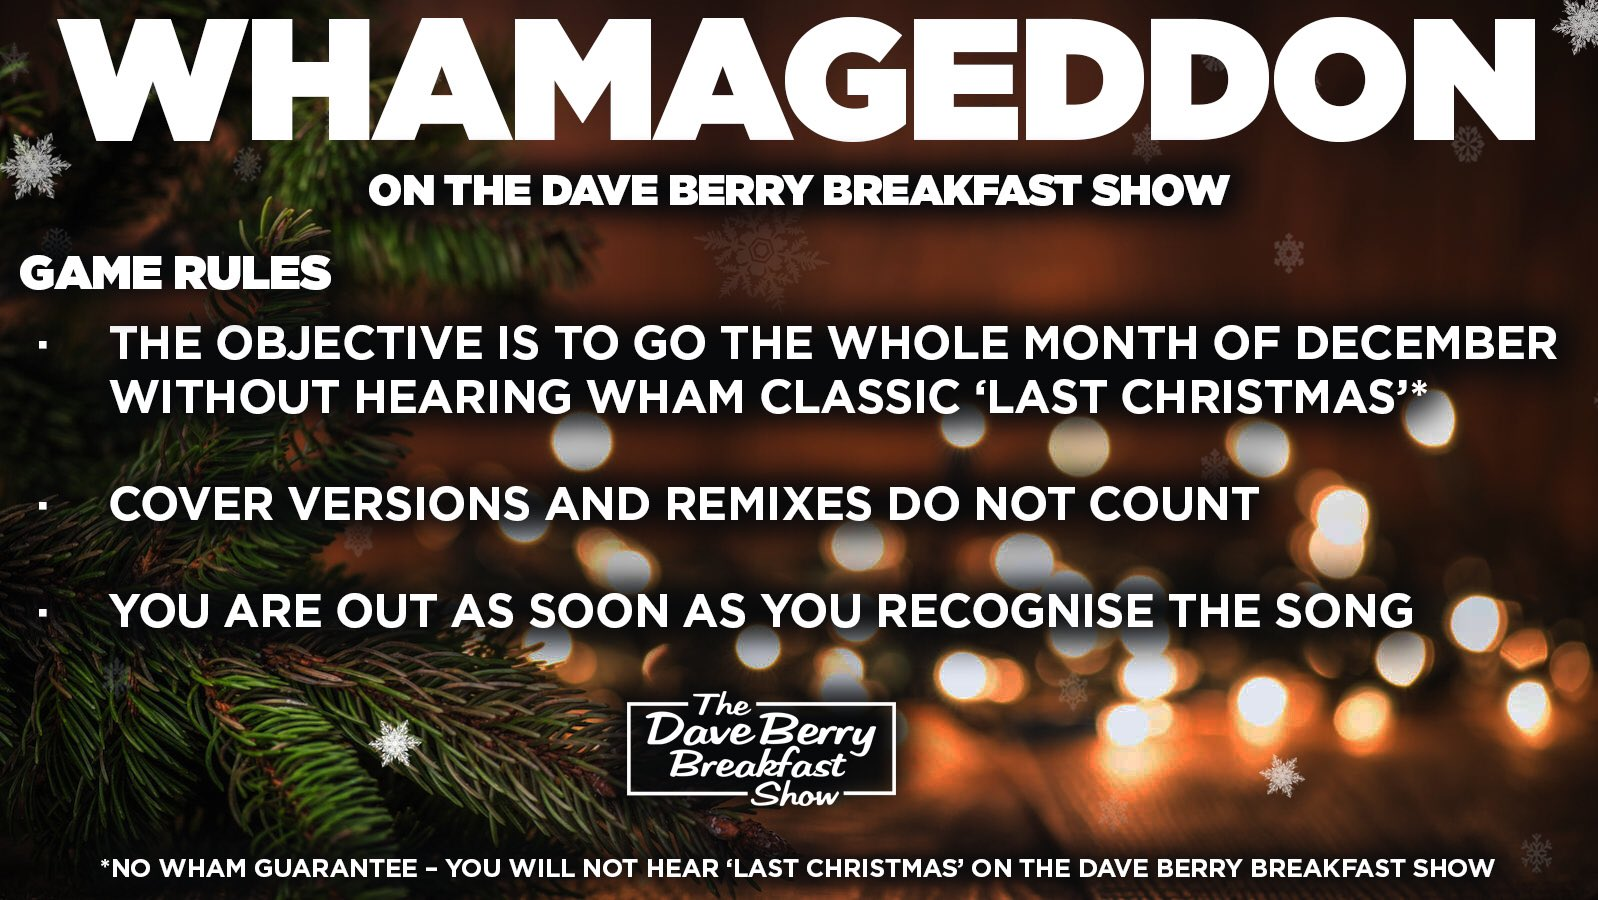 Dave Berry 2021 Christmas Absolute Radio On Twitter With December Just Around The Corner Whamageddon Is Back On The Daveberry Tweet Show The Rules Are Simple The Task Is Huge The Goal Is Universal Can You Make